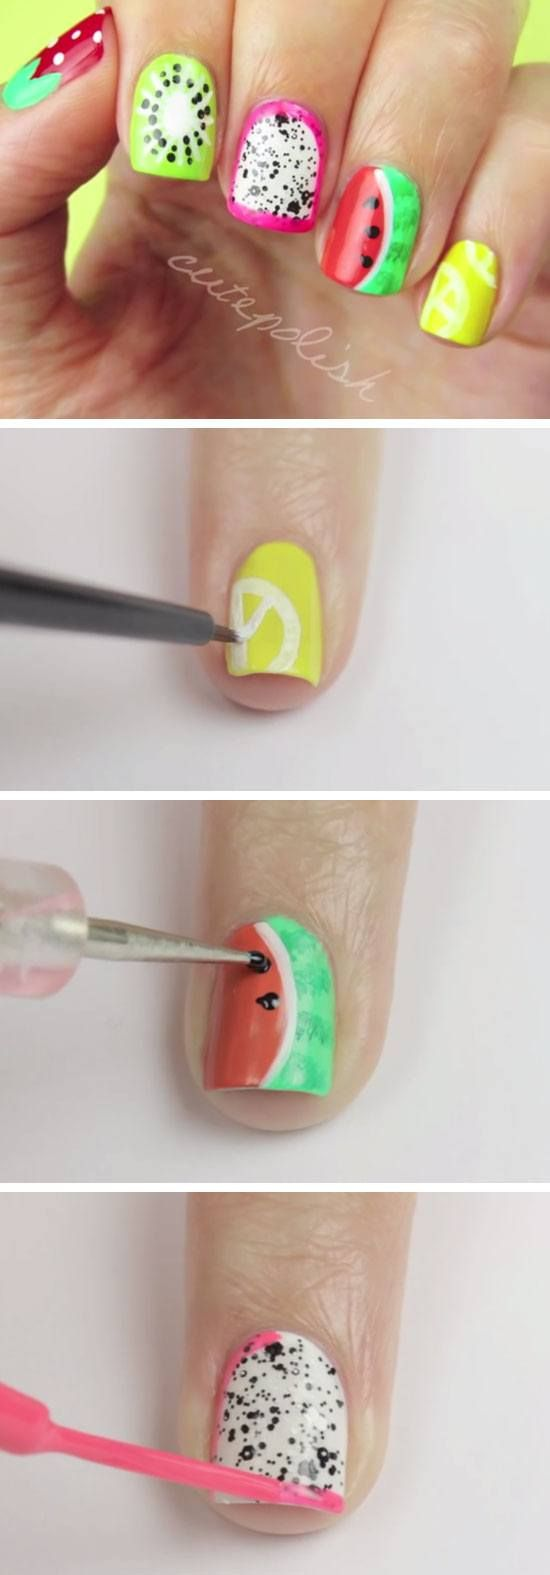 5 Summer Fruit Nail Art Designs | 18 Easy Summer Nails Designs for Summer | Cute Nail Art Ideas for Teens